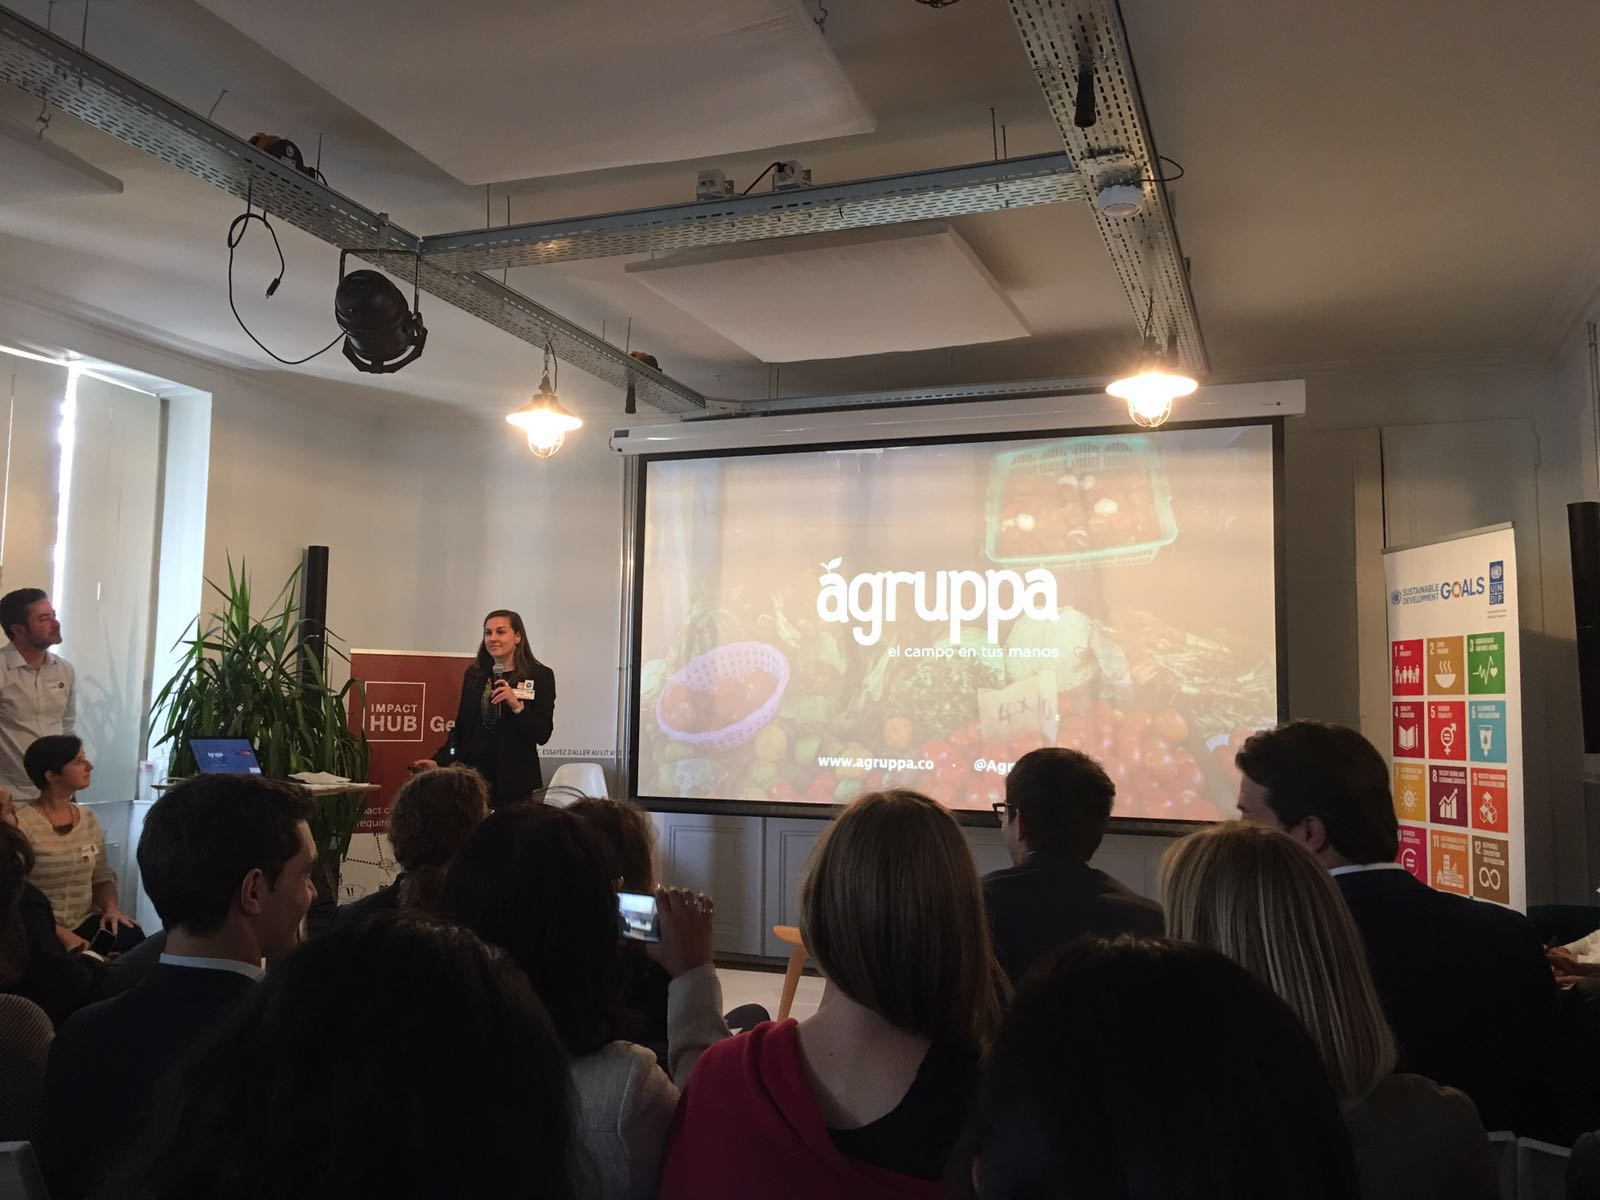 Agruppa was one of the Accelerate 2030 finalists